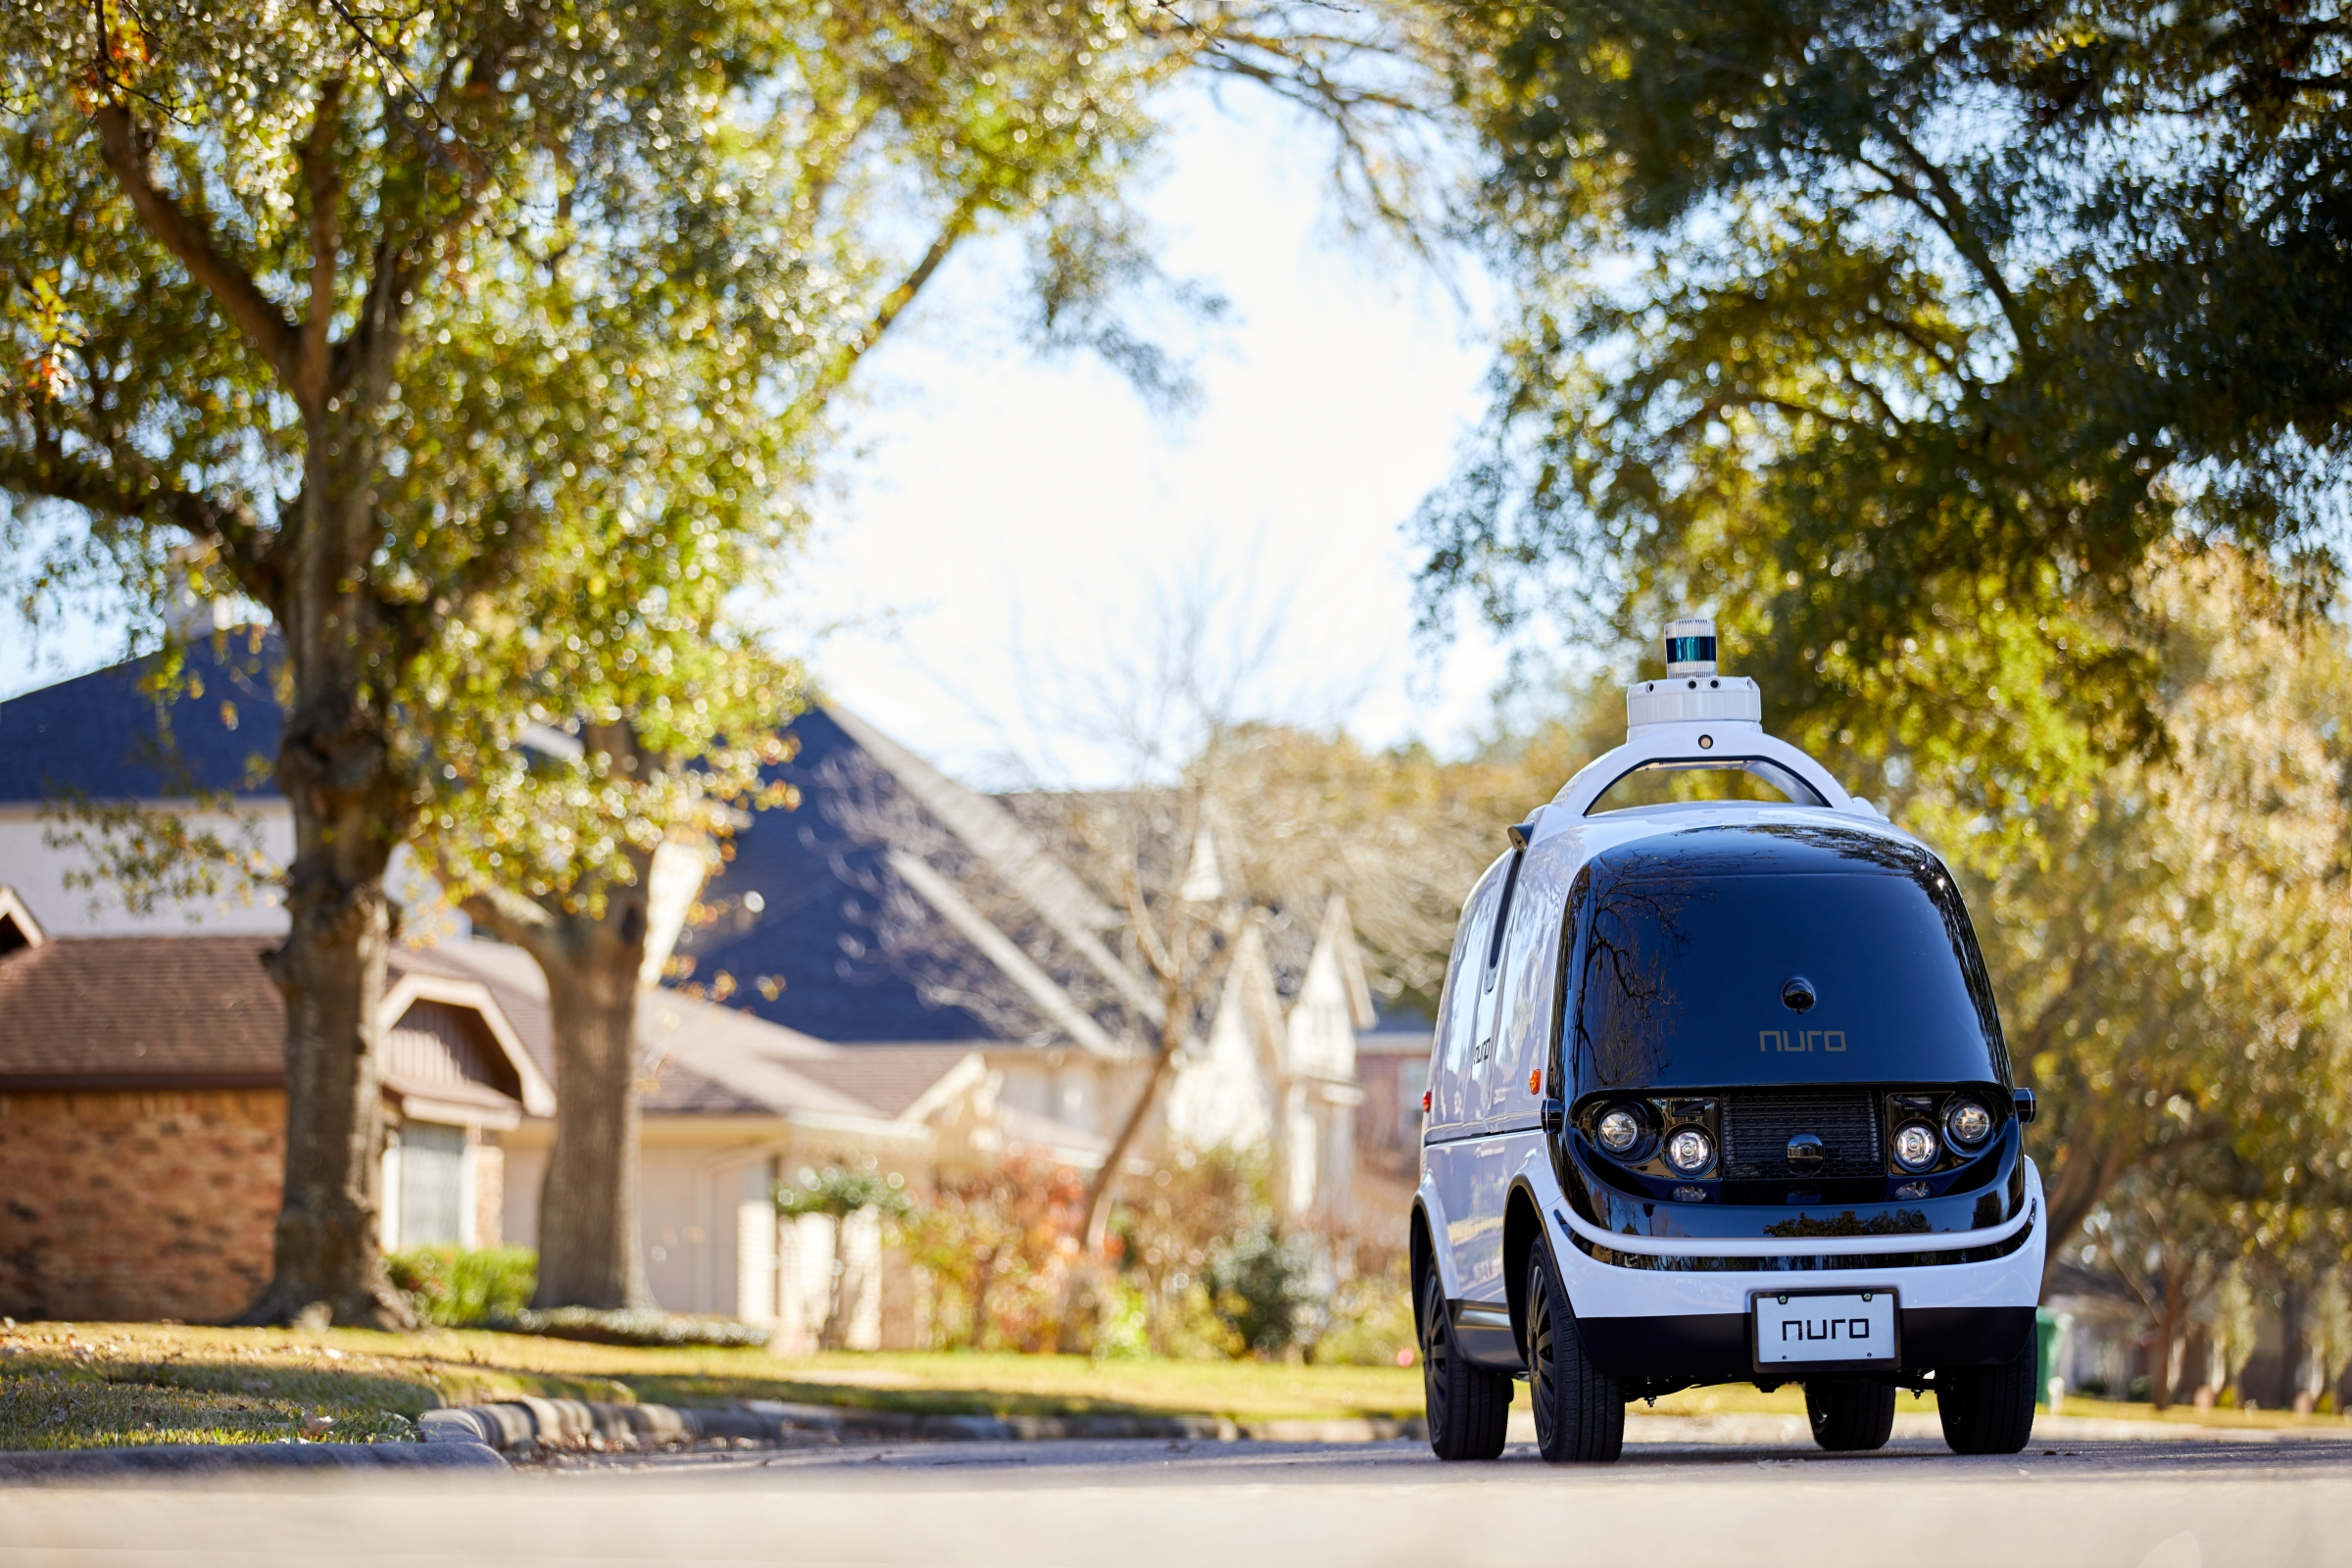 Mountain View tech startup Nuro lands state's first autonomous vehicle permit - Mountain View Voice